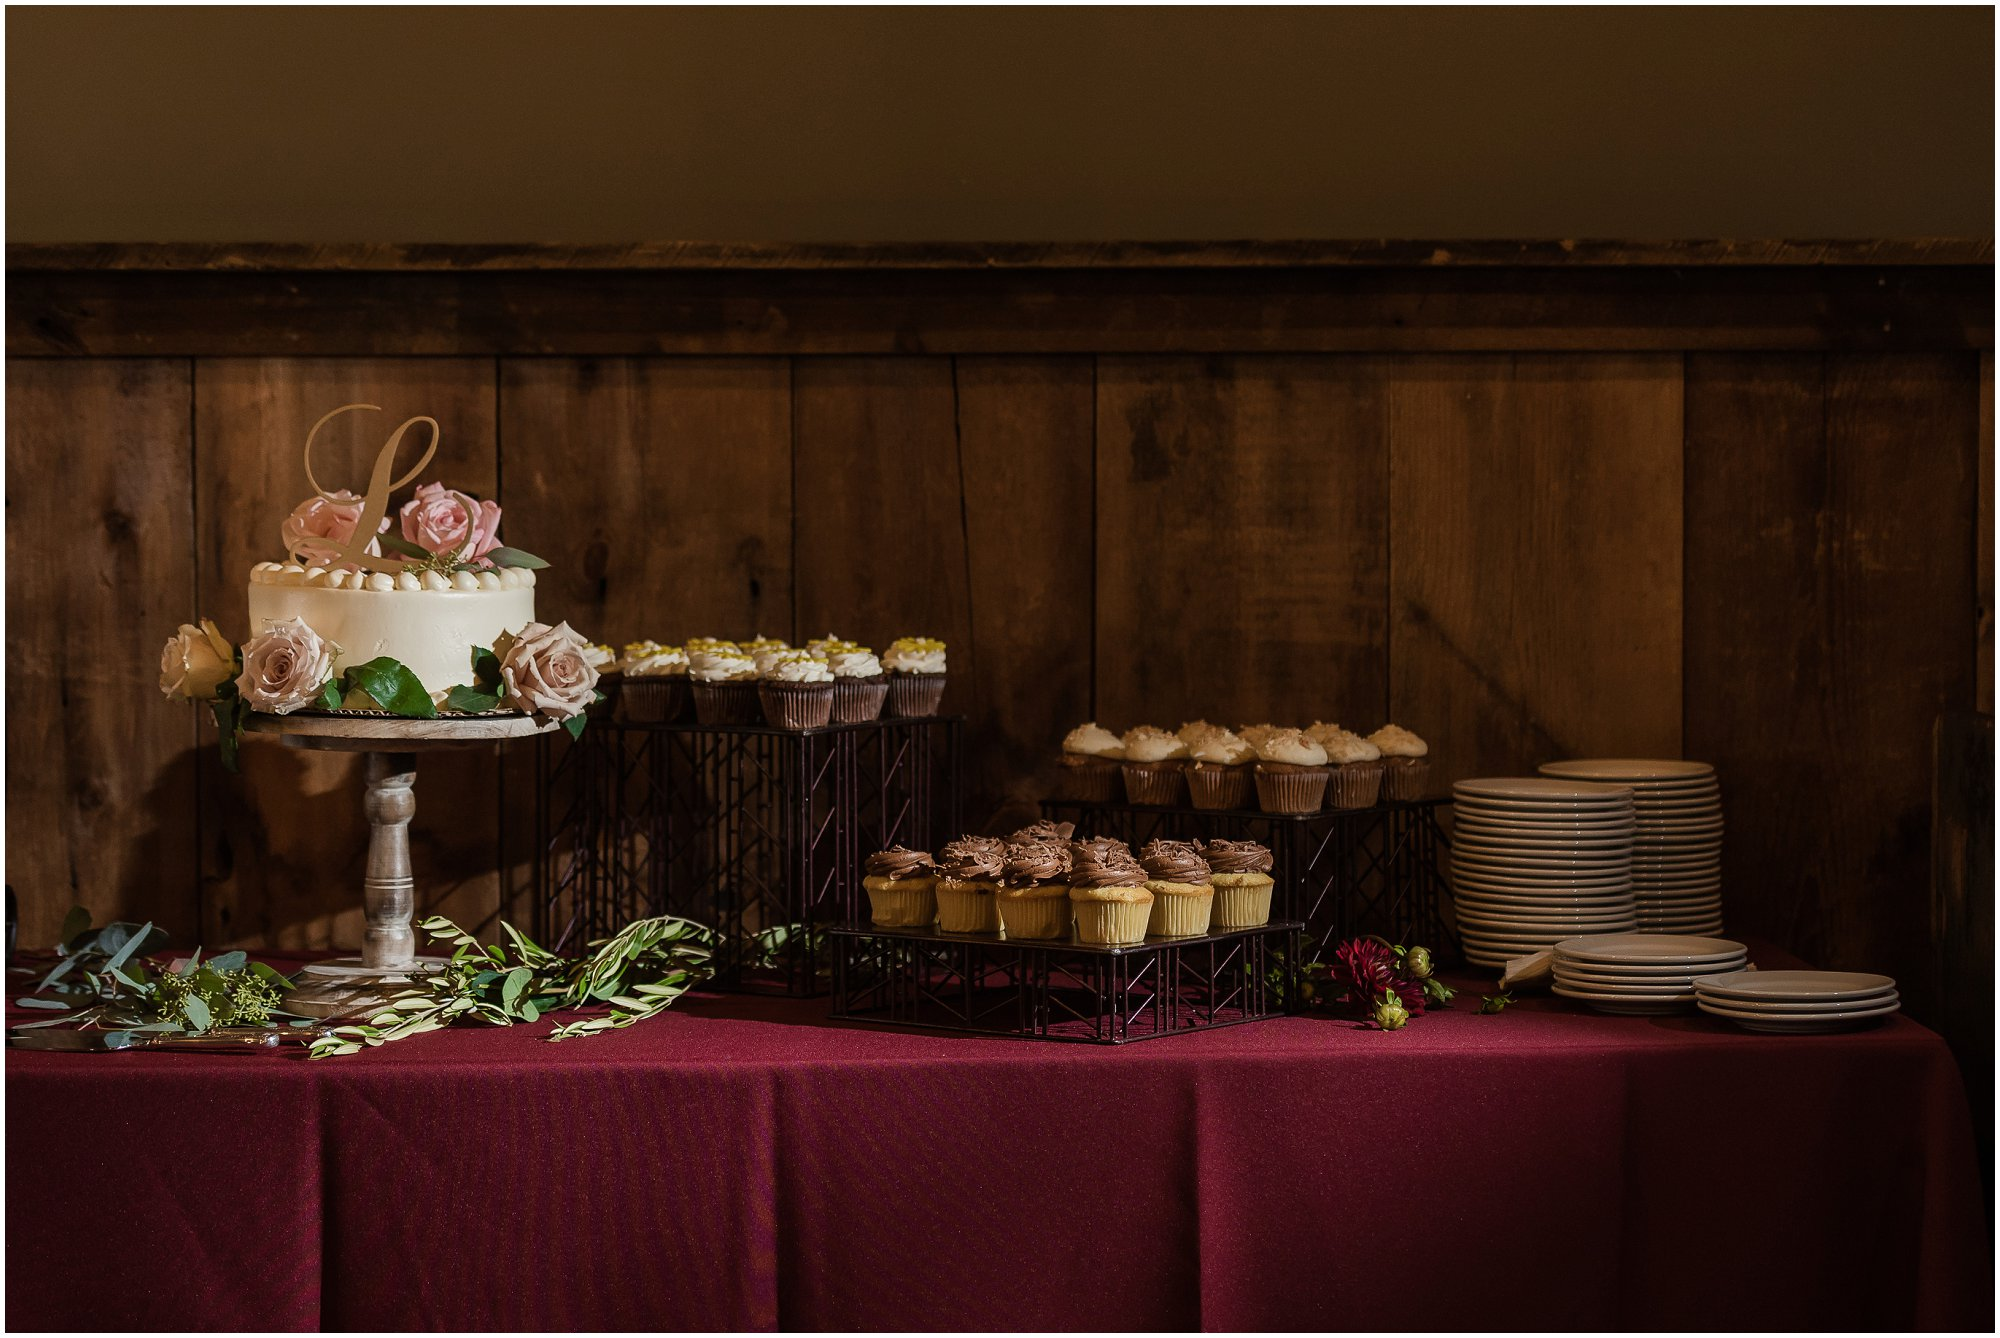 cornman-farms-wedding-michigan-barn-wedding_0974.jpg